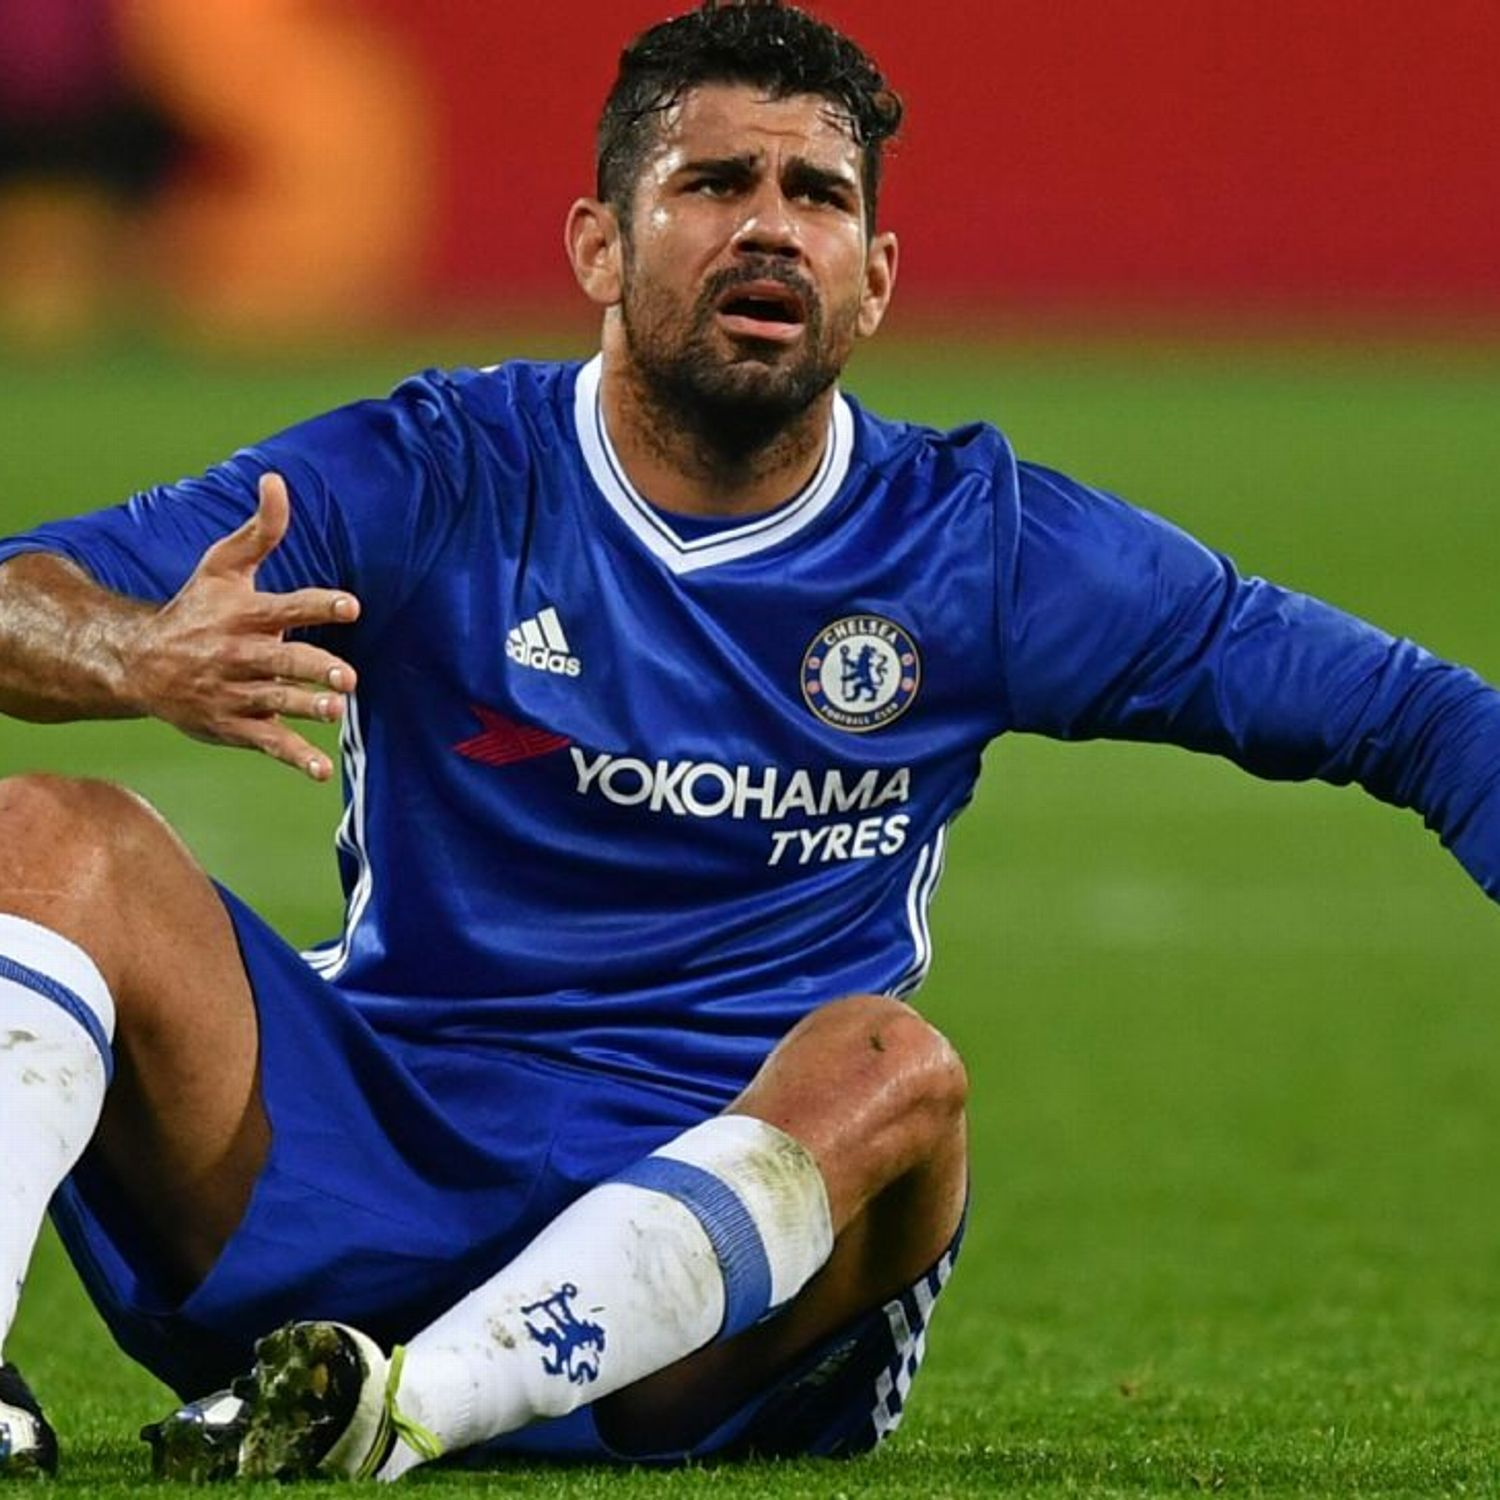 Diego Costa returns to Chelsea to assess injury source